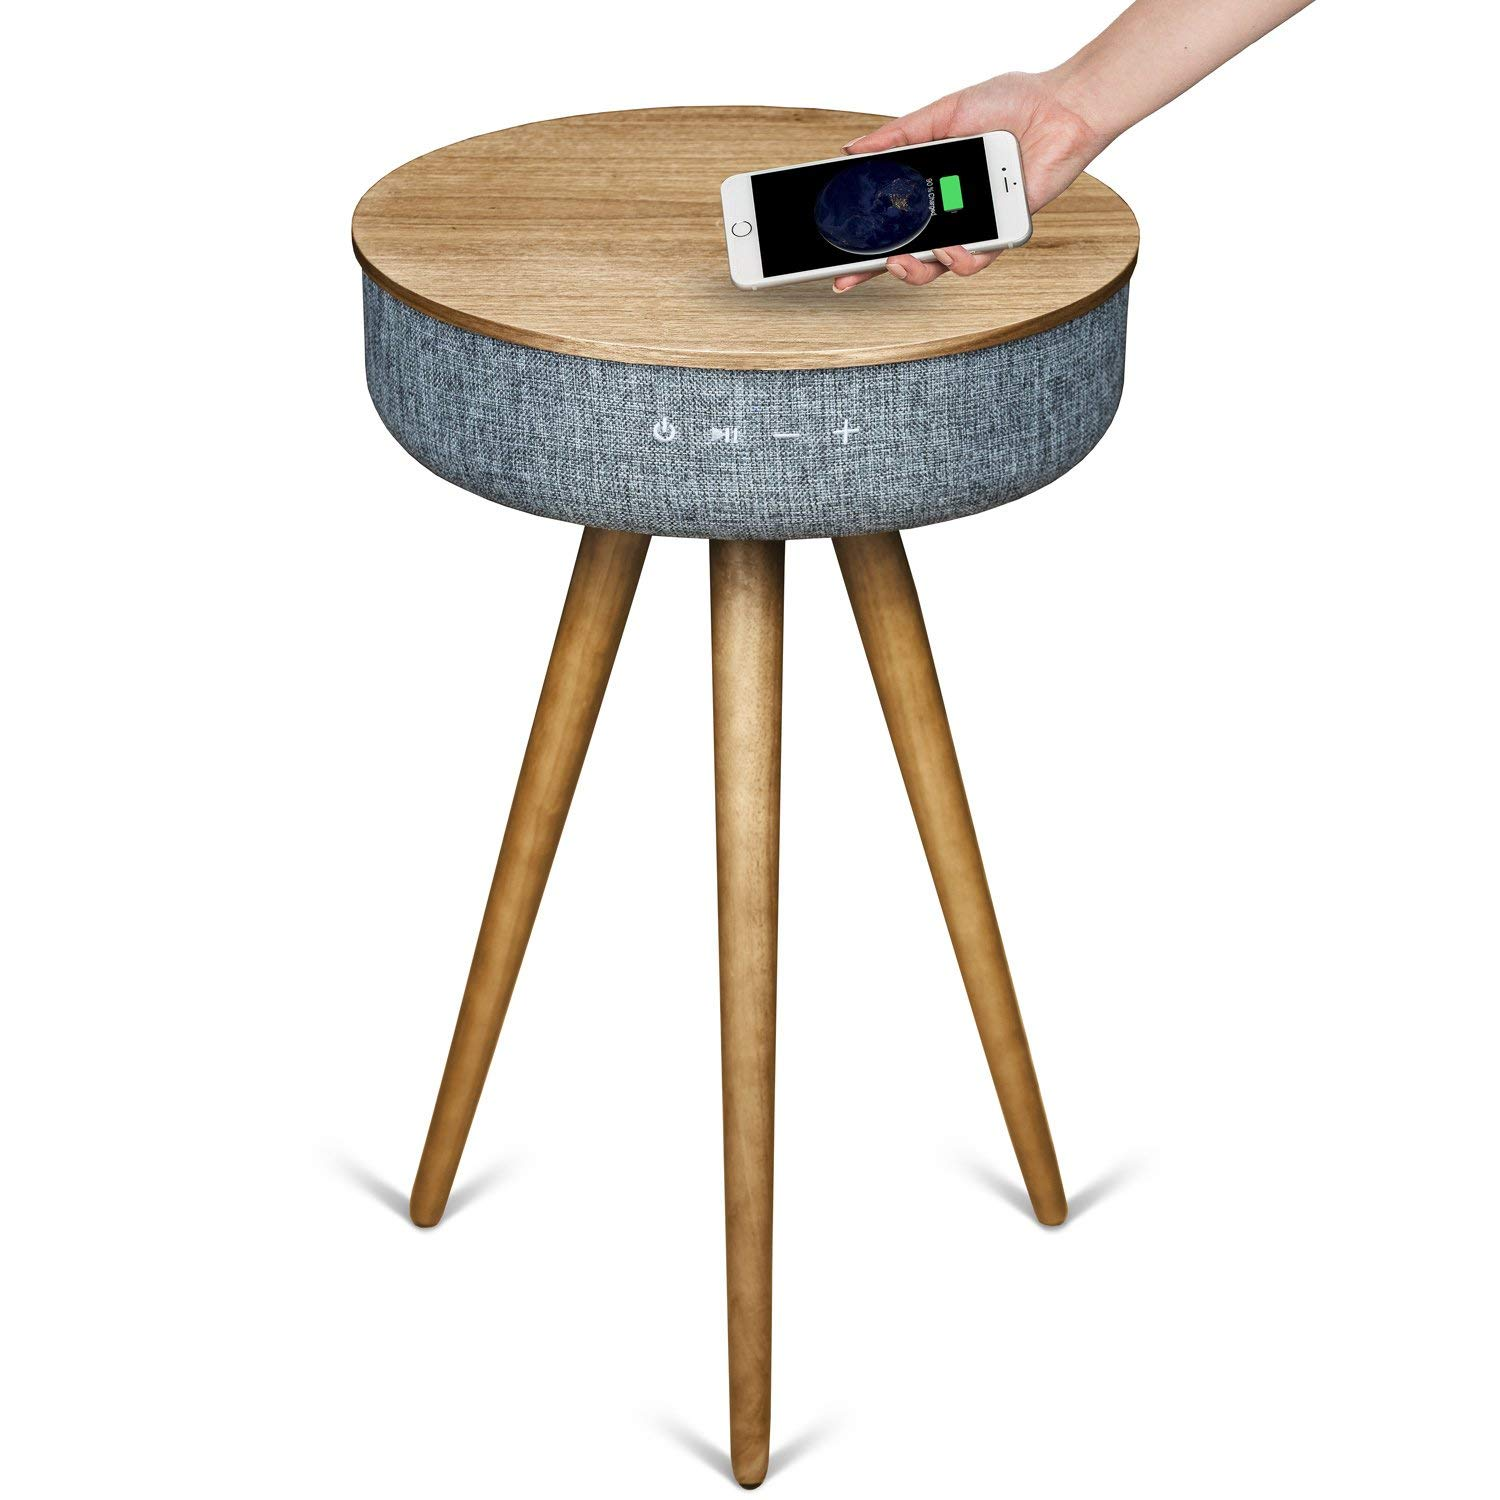 Sierra Modern Home Studio Smart Table 1